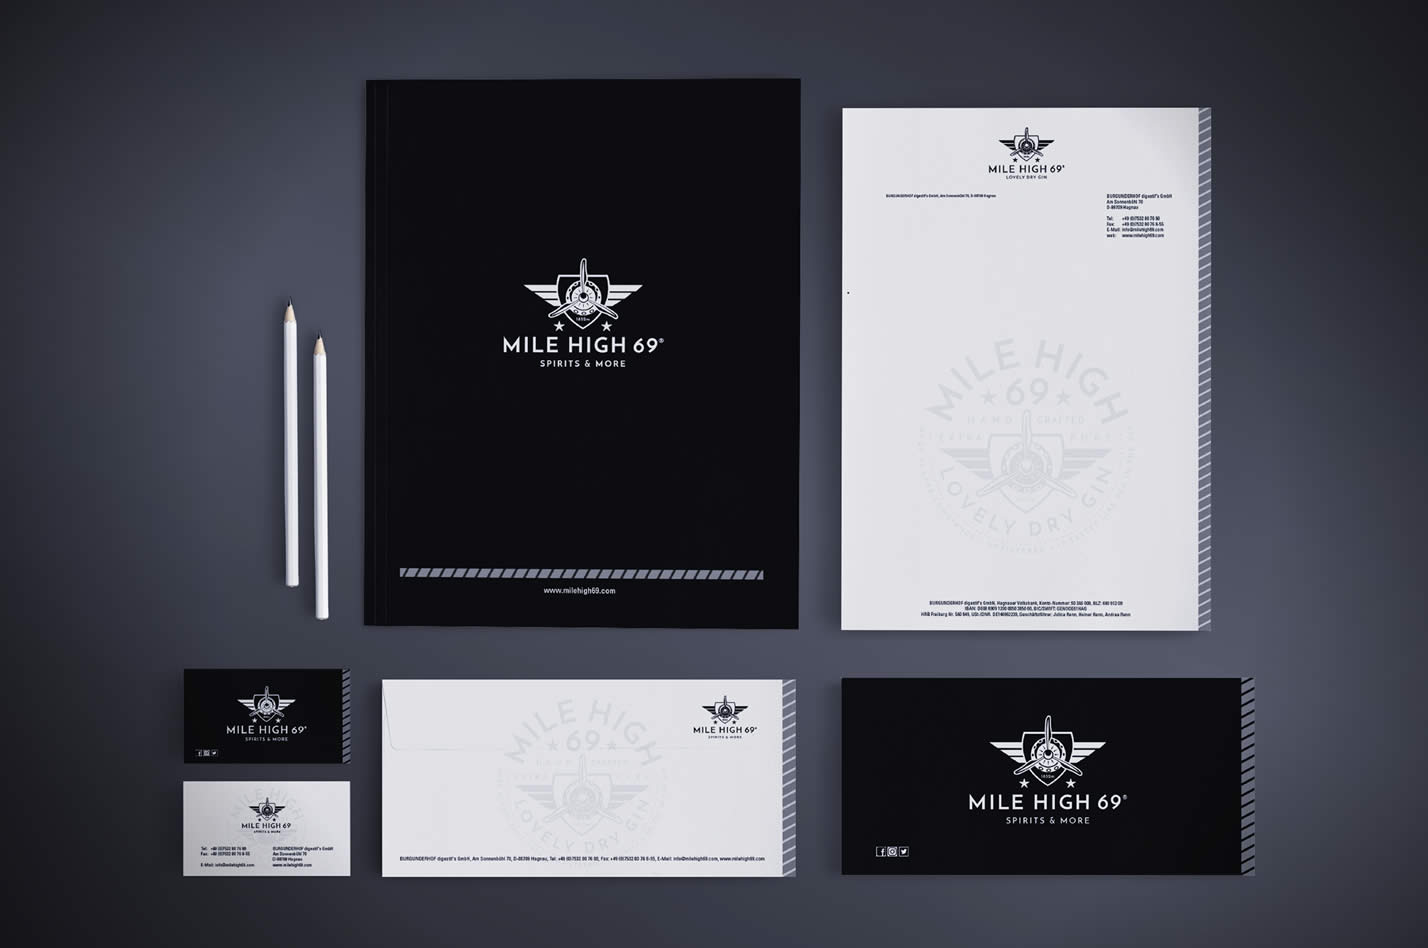 Mile High 69 Gin Corporate Design and Branding